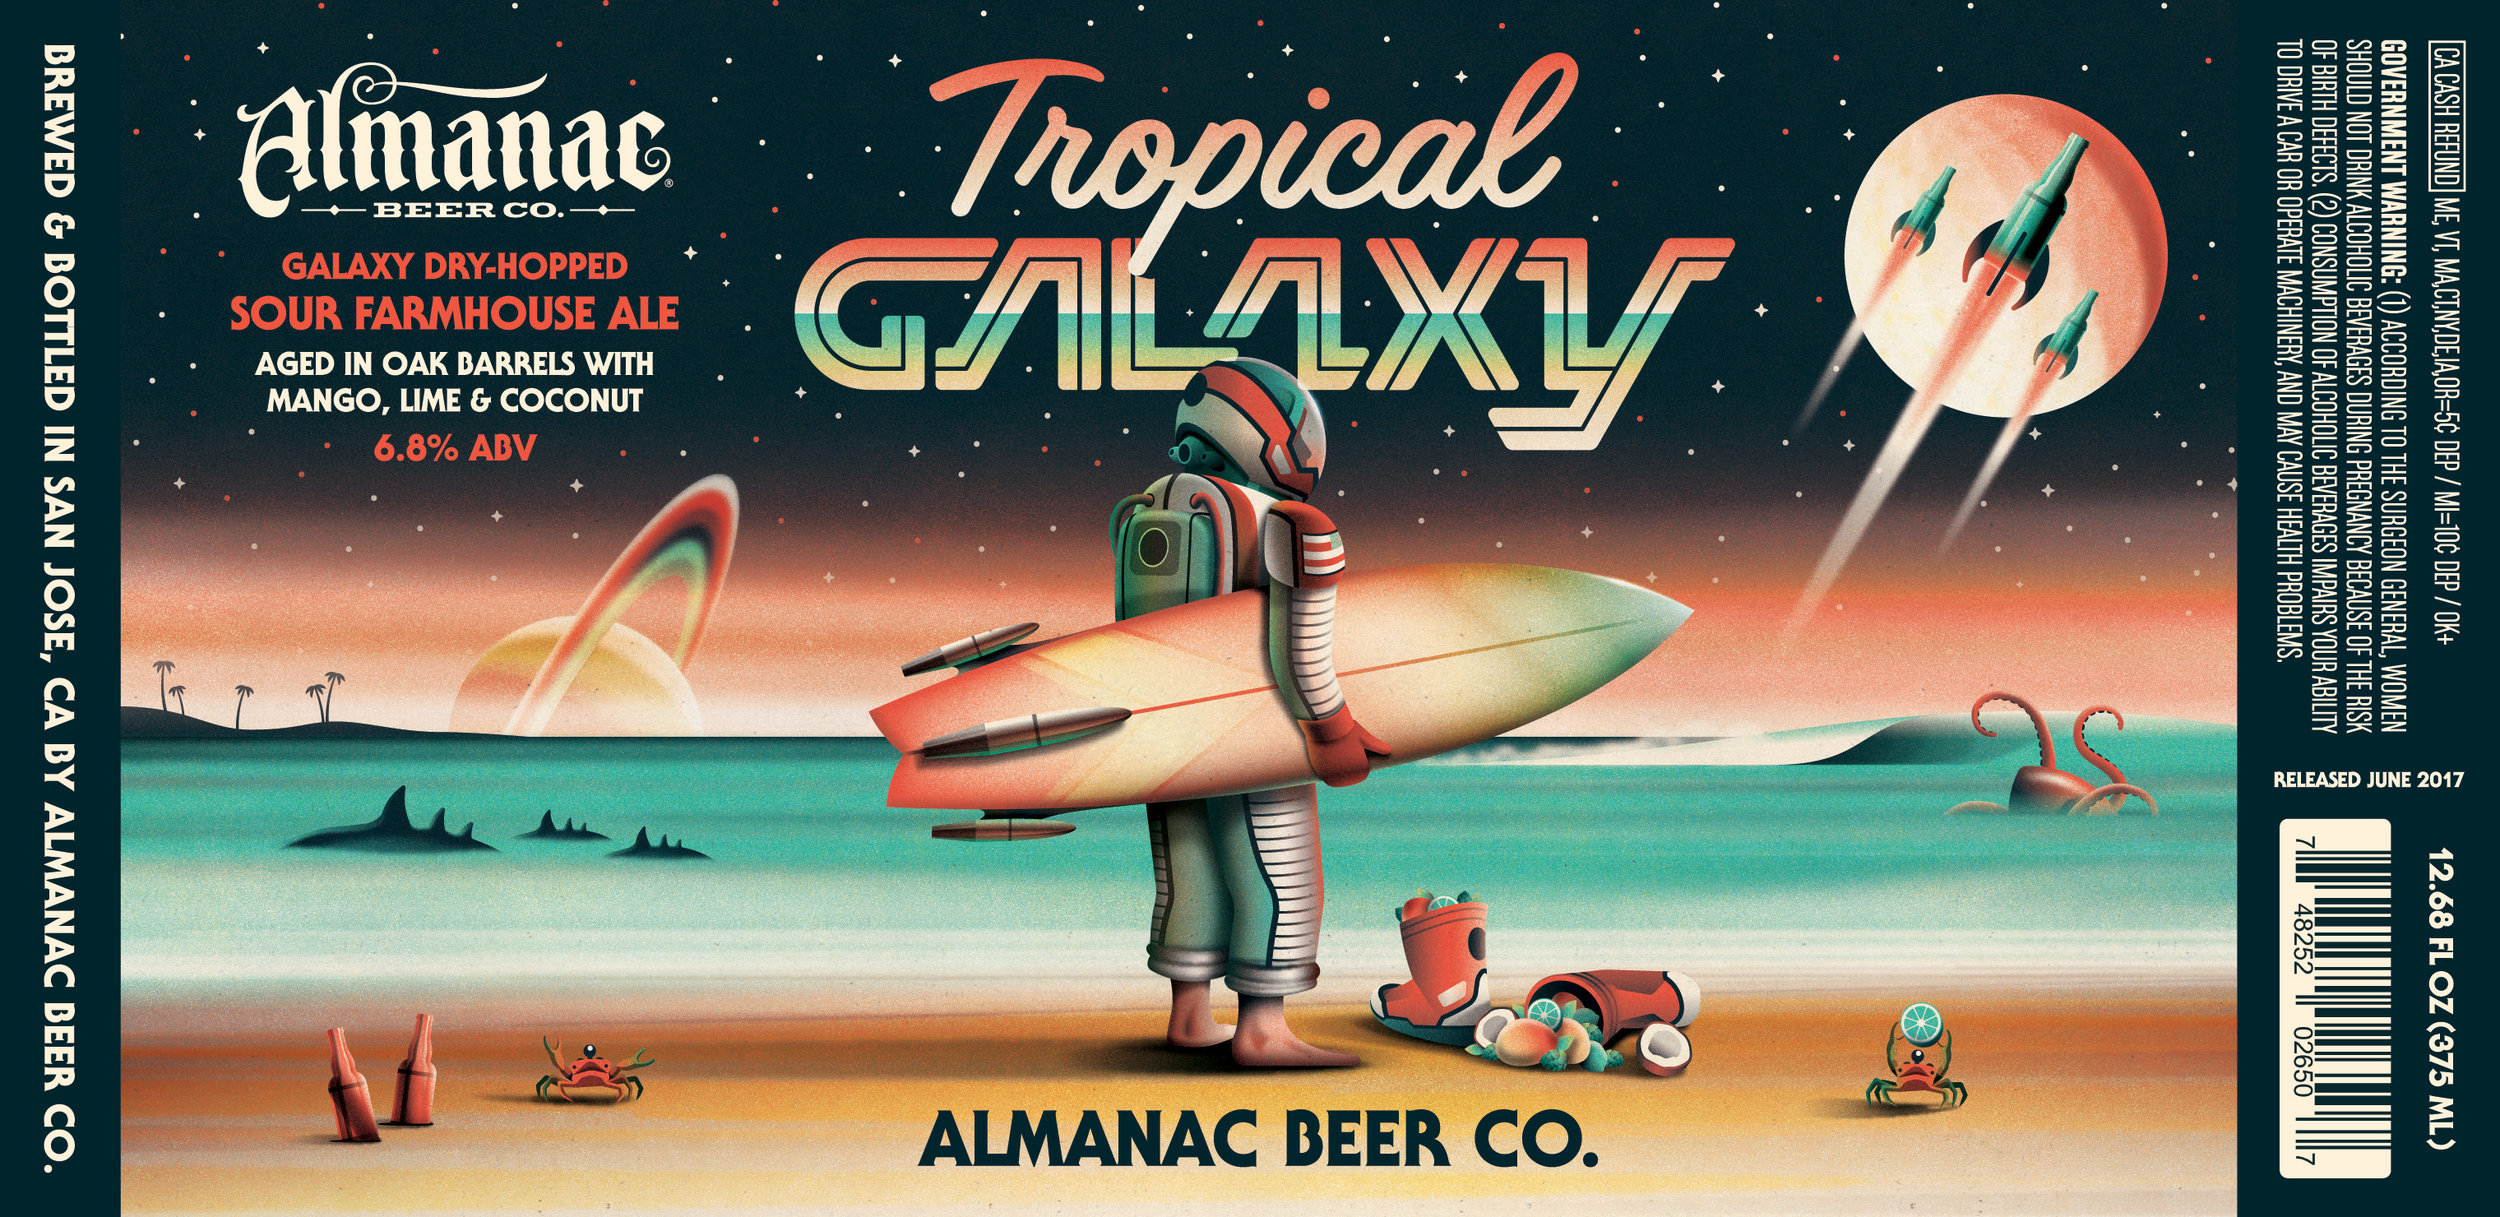 Almanac Beer Co. Tropical Galaxy design by DKNG